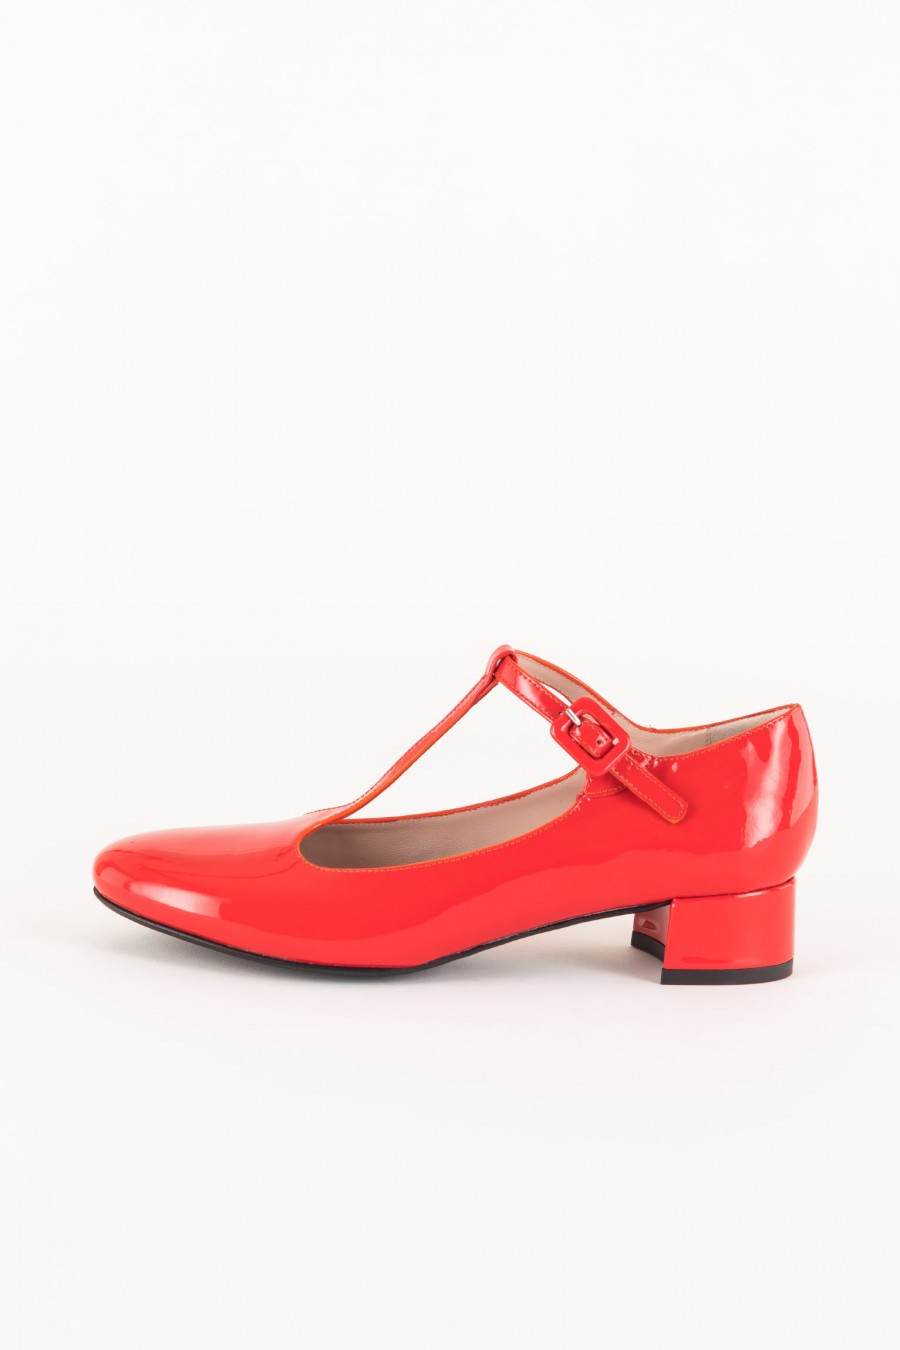 Red ballerinas with t strap